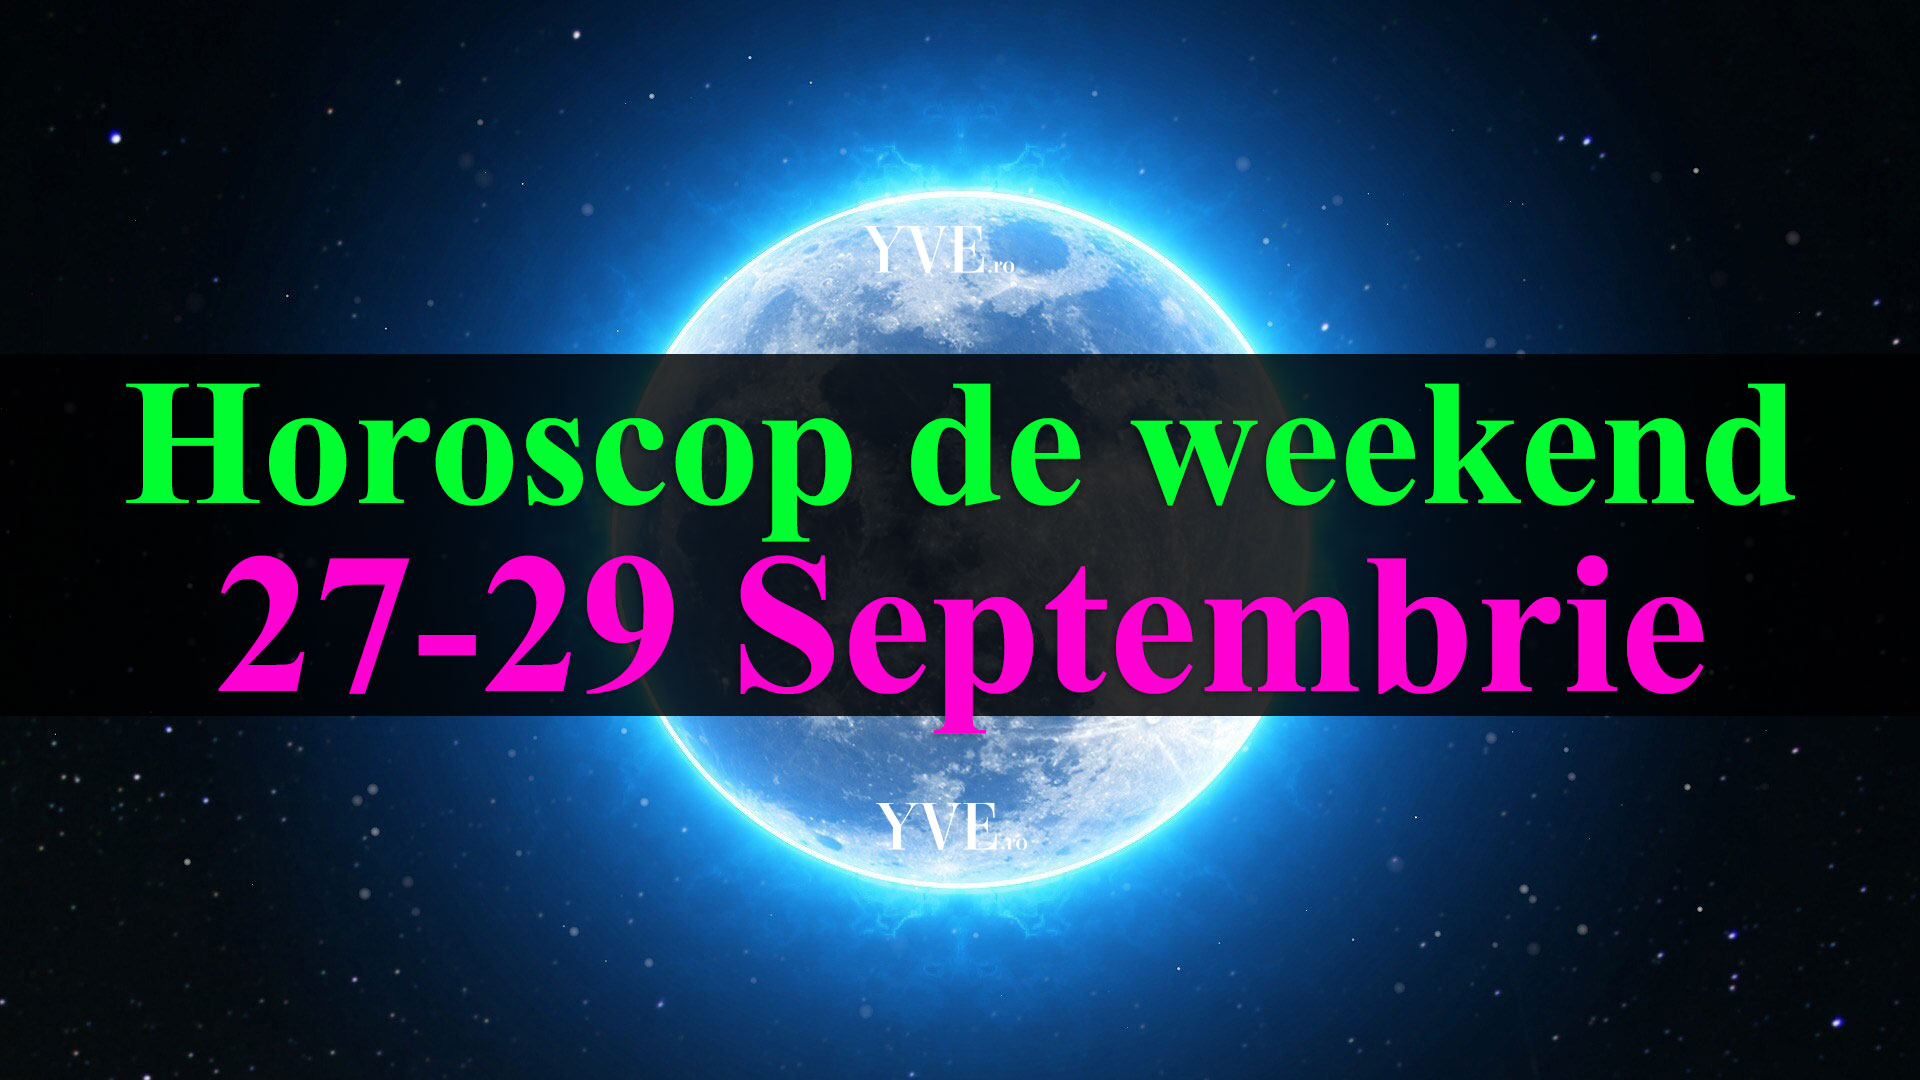 Horoscop de weekend 27-29 Septembrie 2019